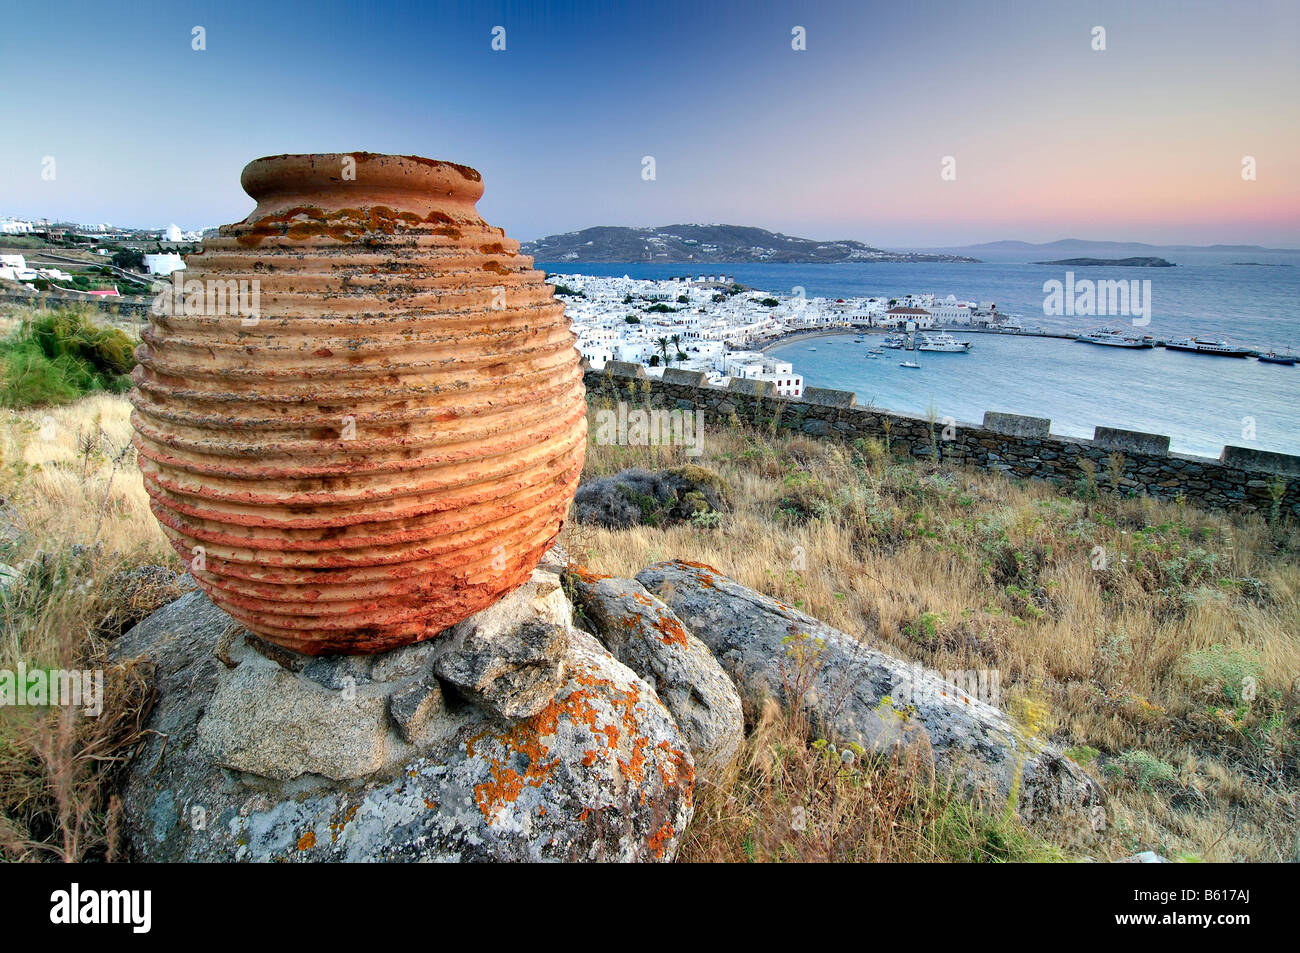 Antique clay vase in front of the old port of Mykonos, Cyclades, Greece, Europe - Stock Image